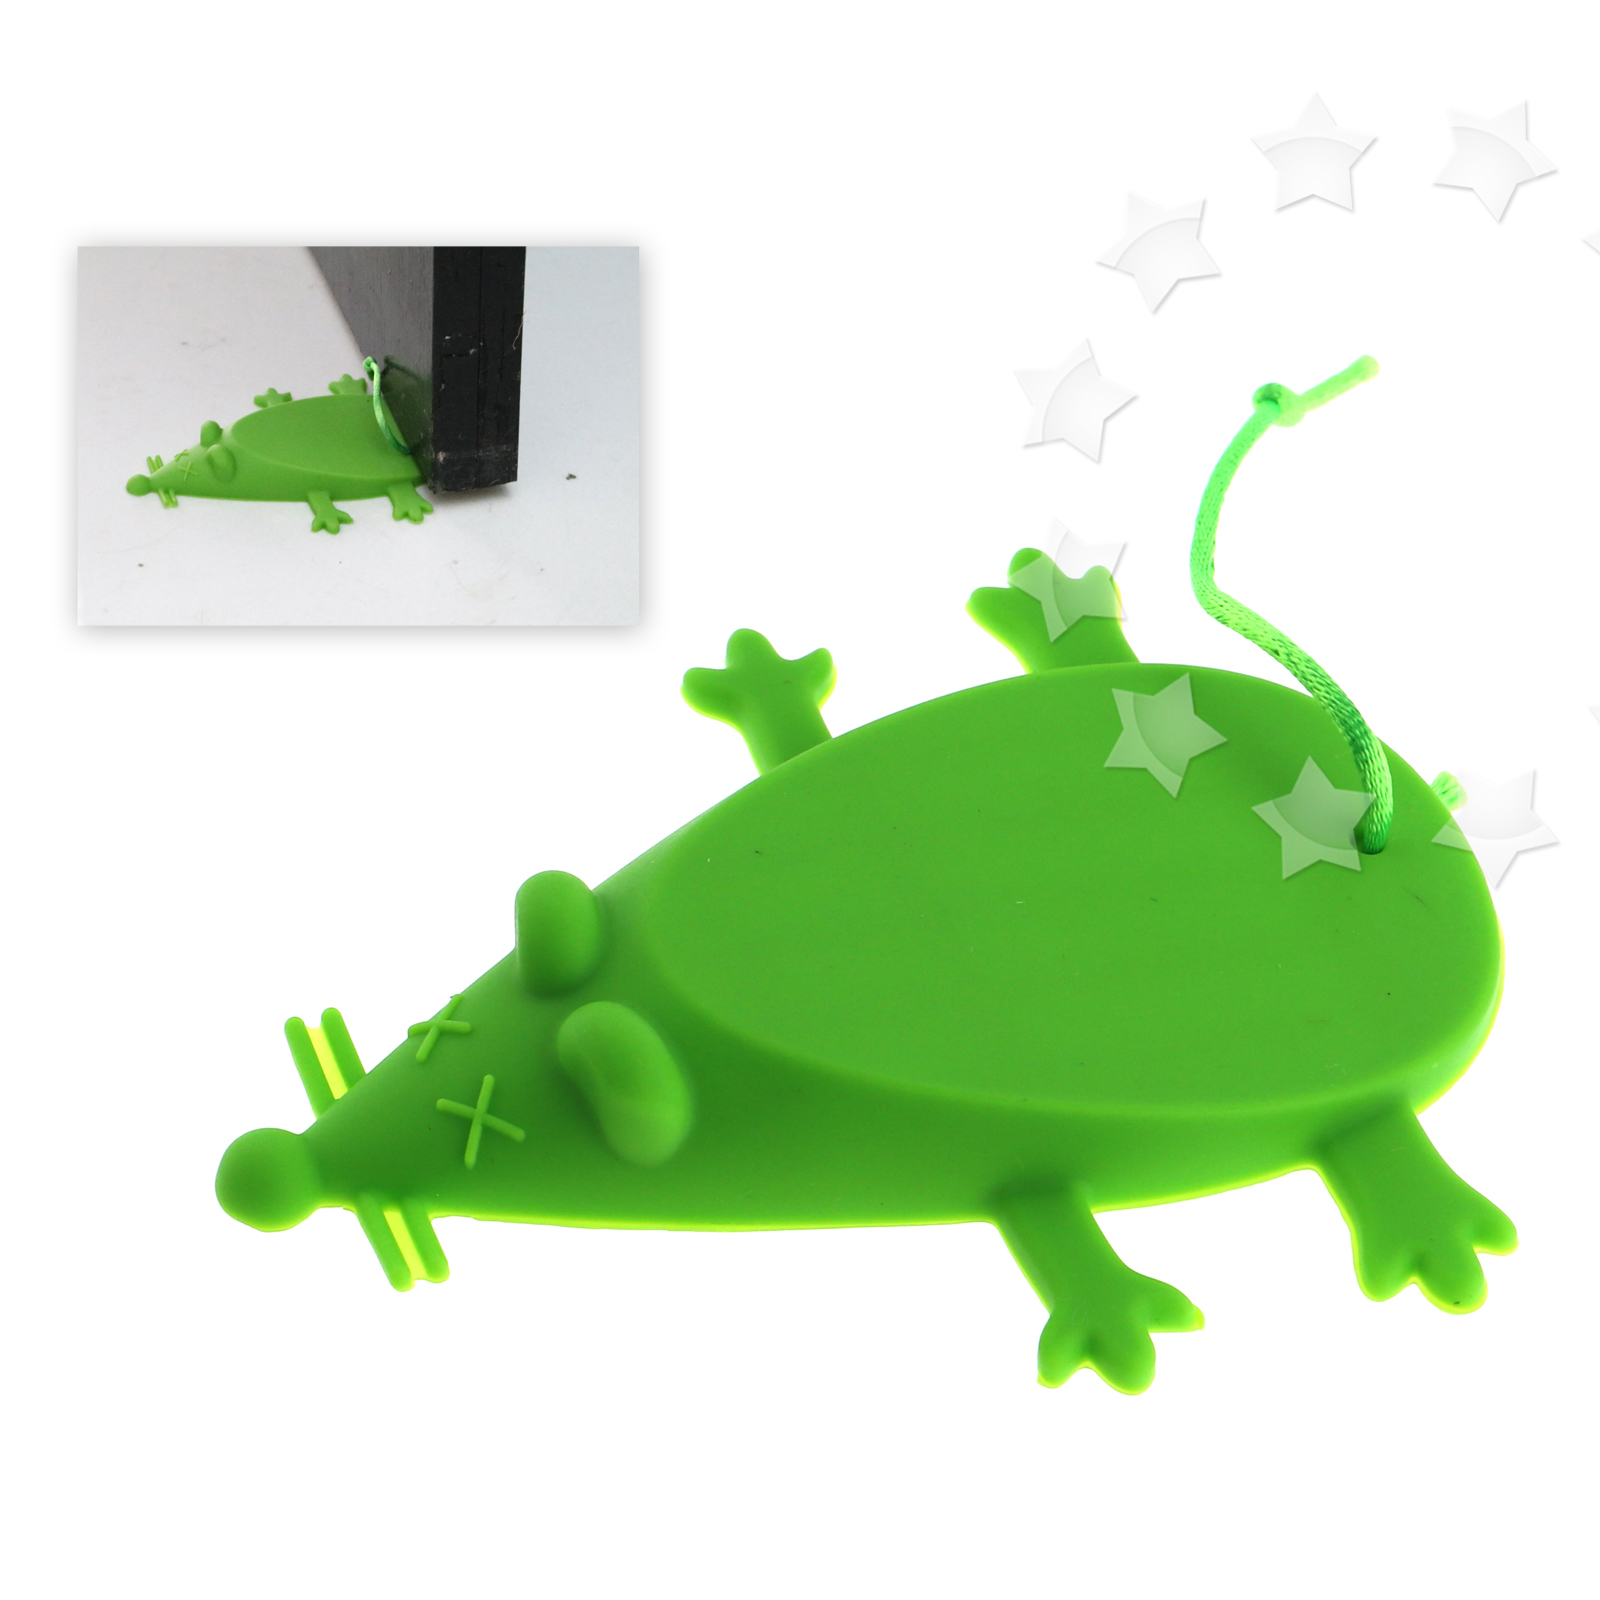 Silicone-Rubber-Lovely-Mouse-Door-Stop-Stoppers-Wedge-Jam-Against-Closing-Home